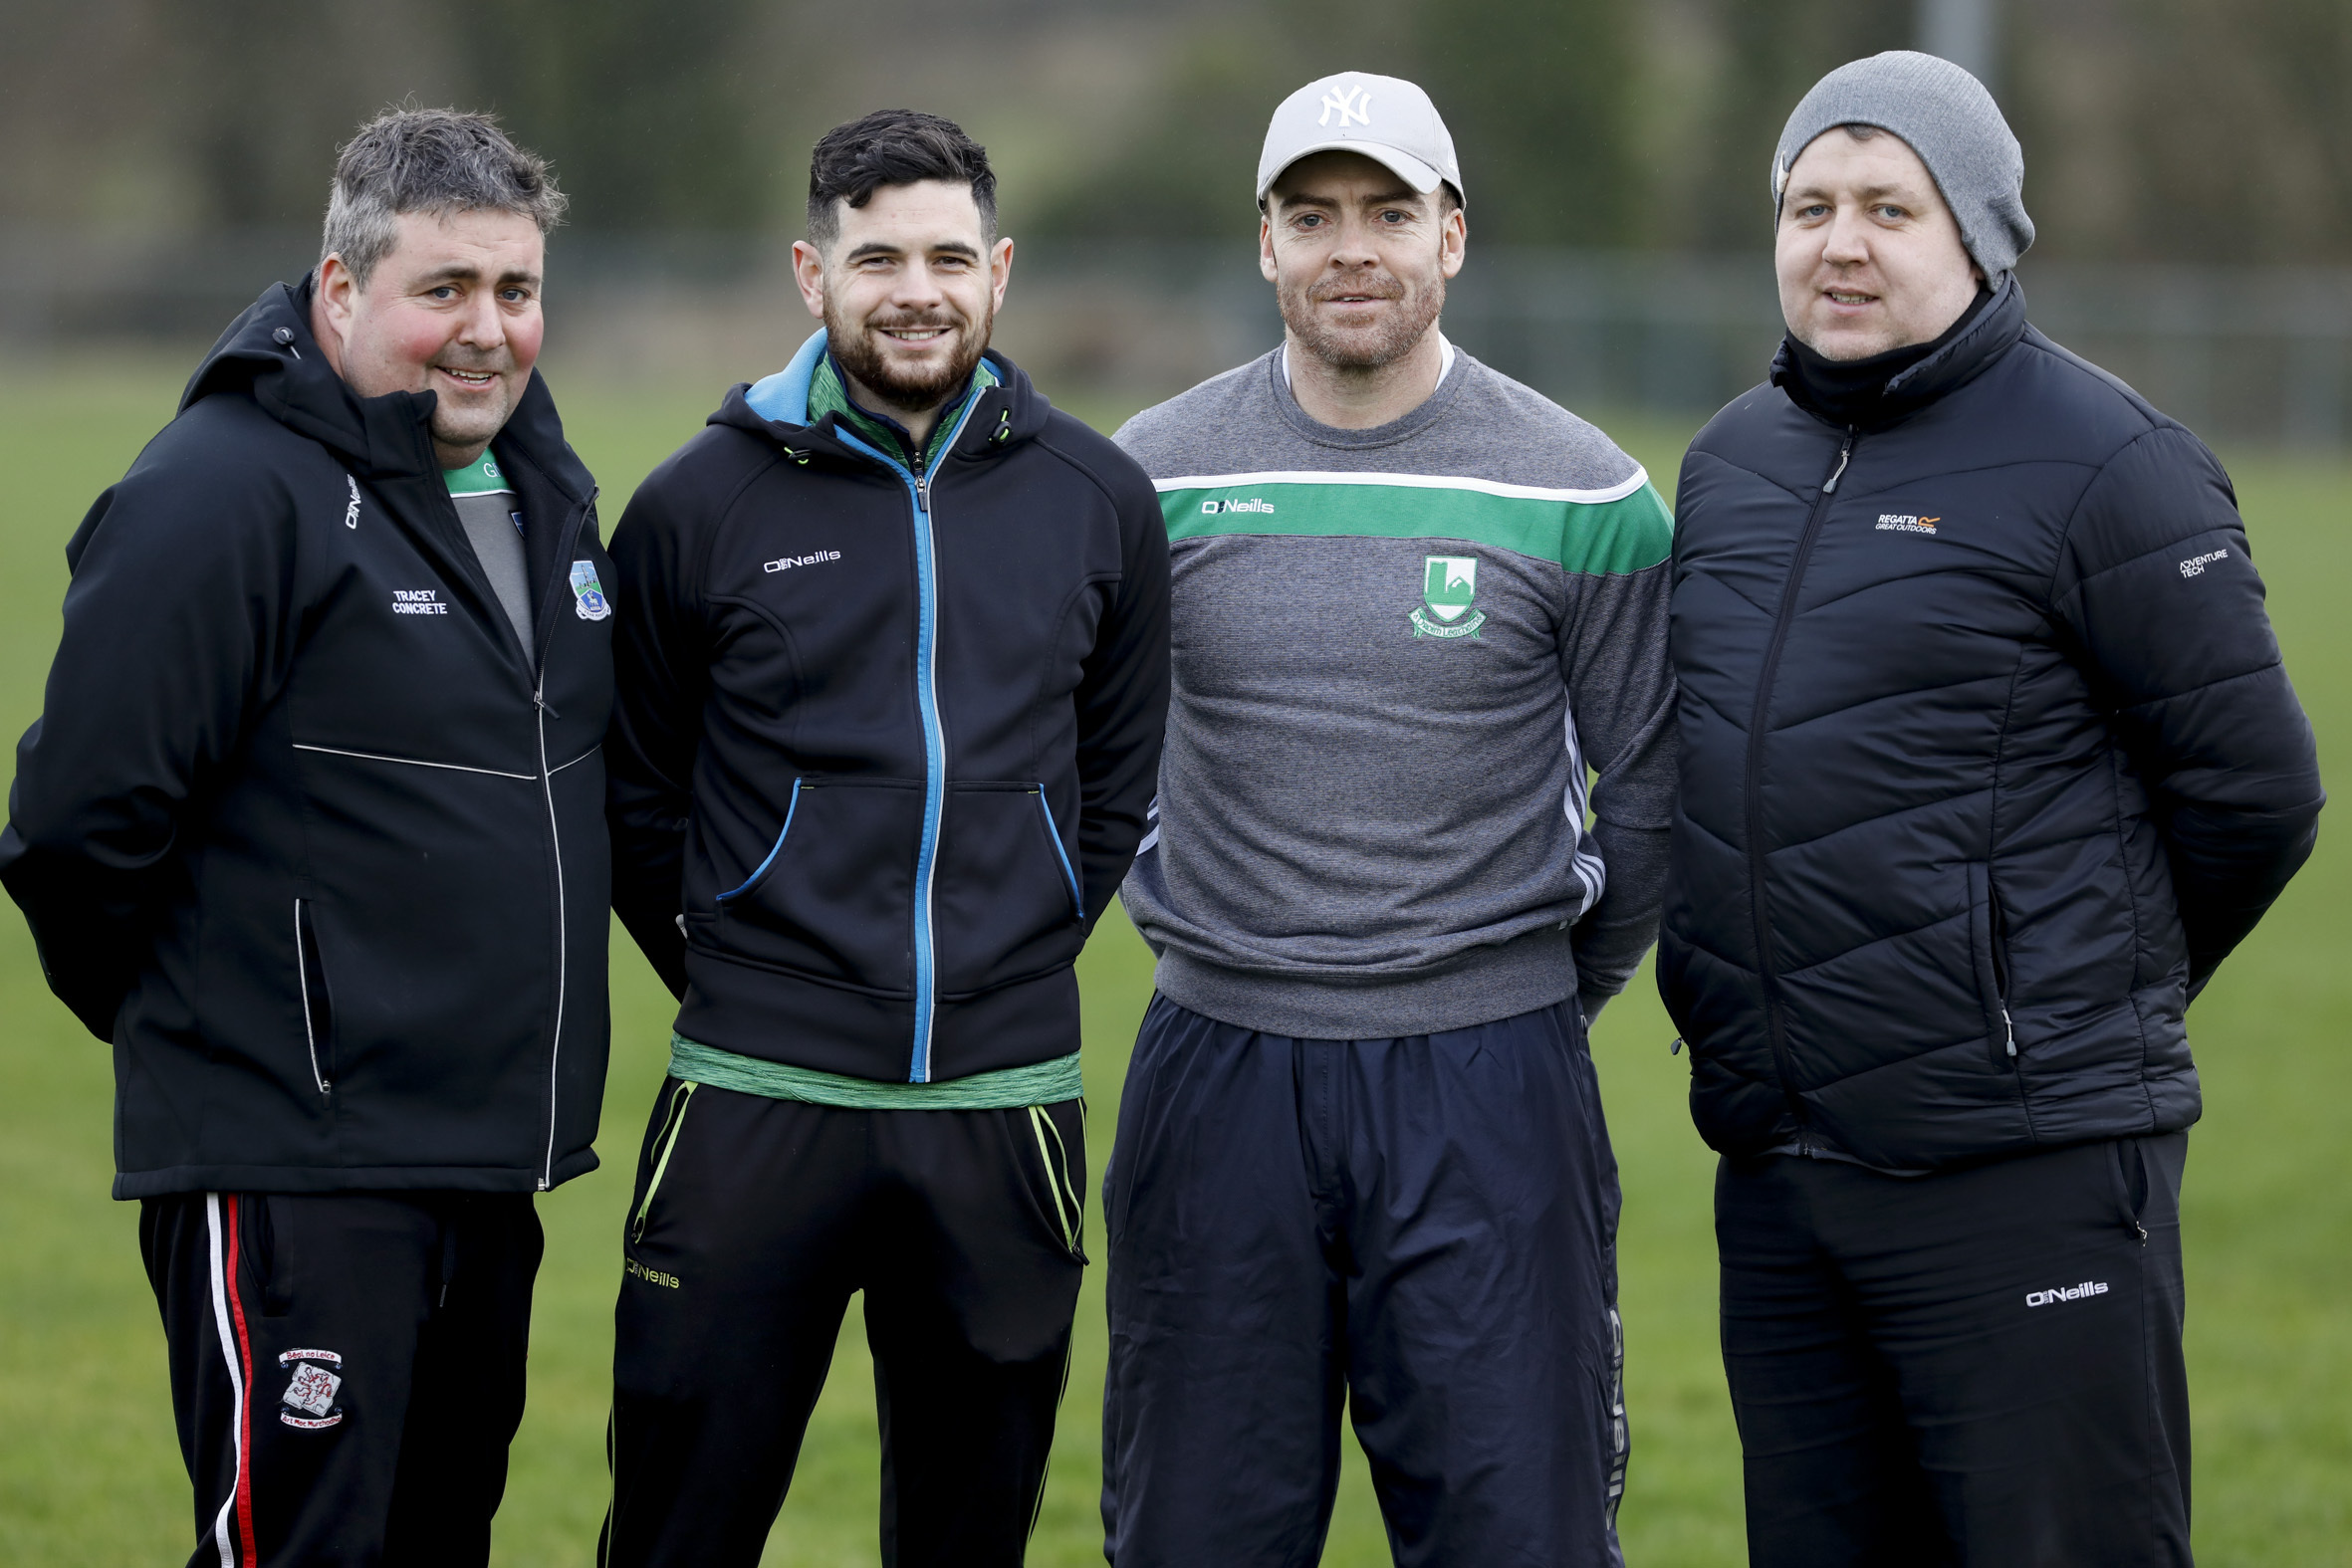 The Fermanagh U20 management team, Gerard McGahey, Charlie Kane, Ollie Fay and Kevin O'Rourke.